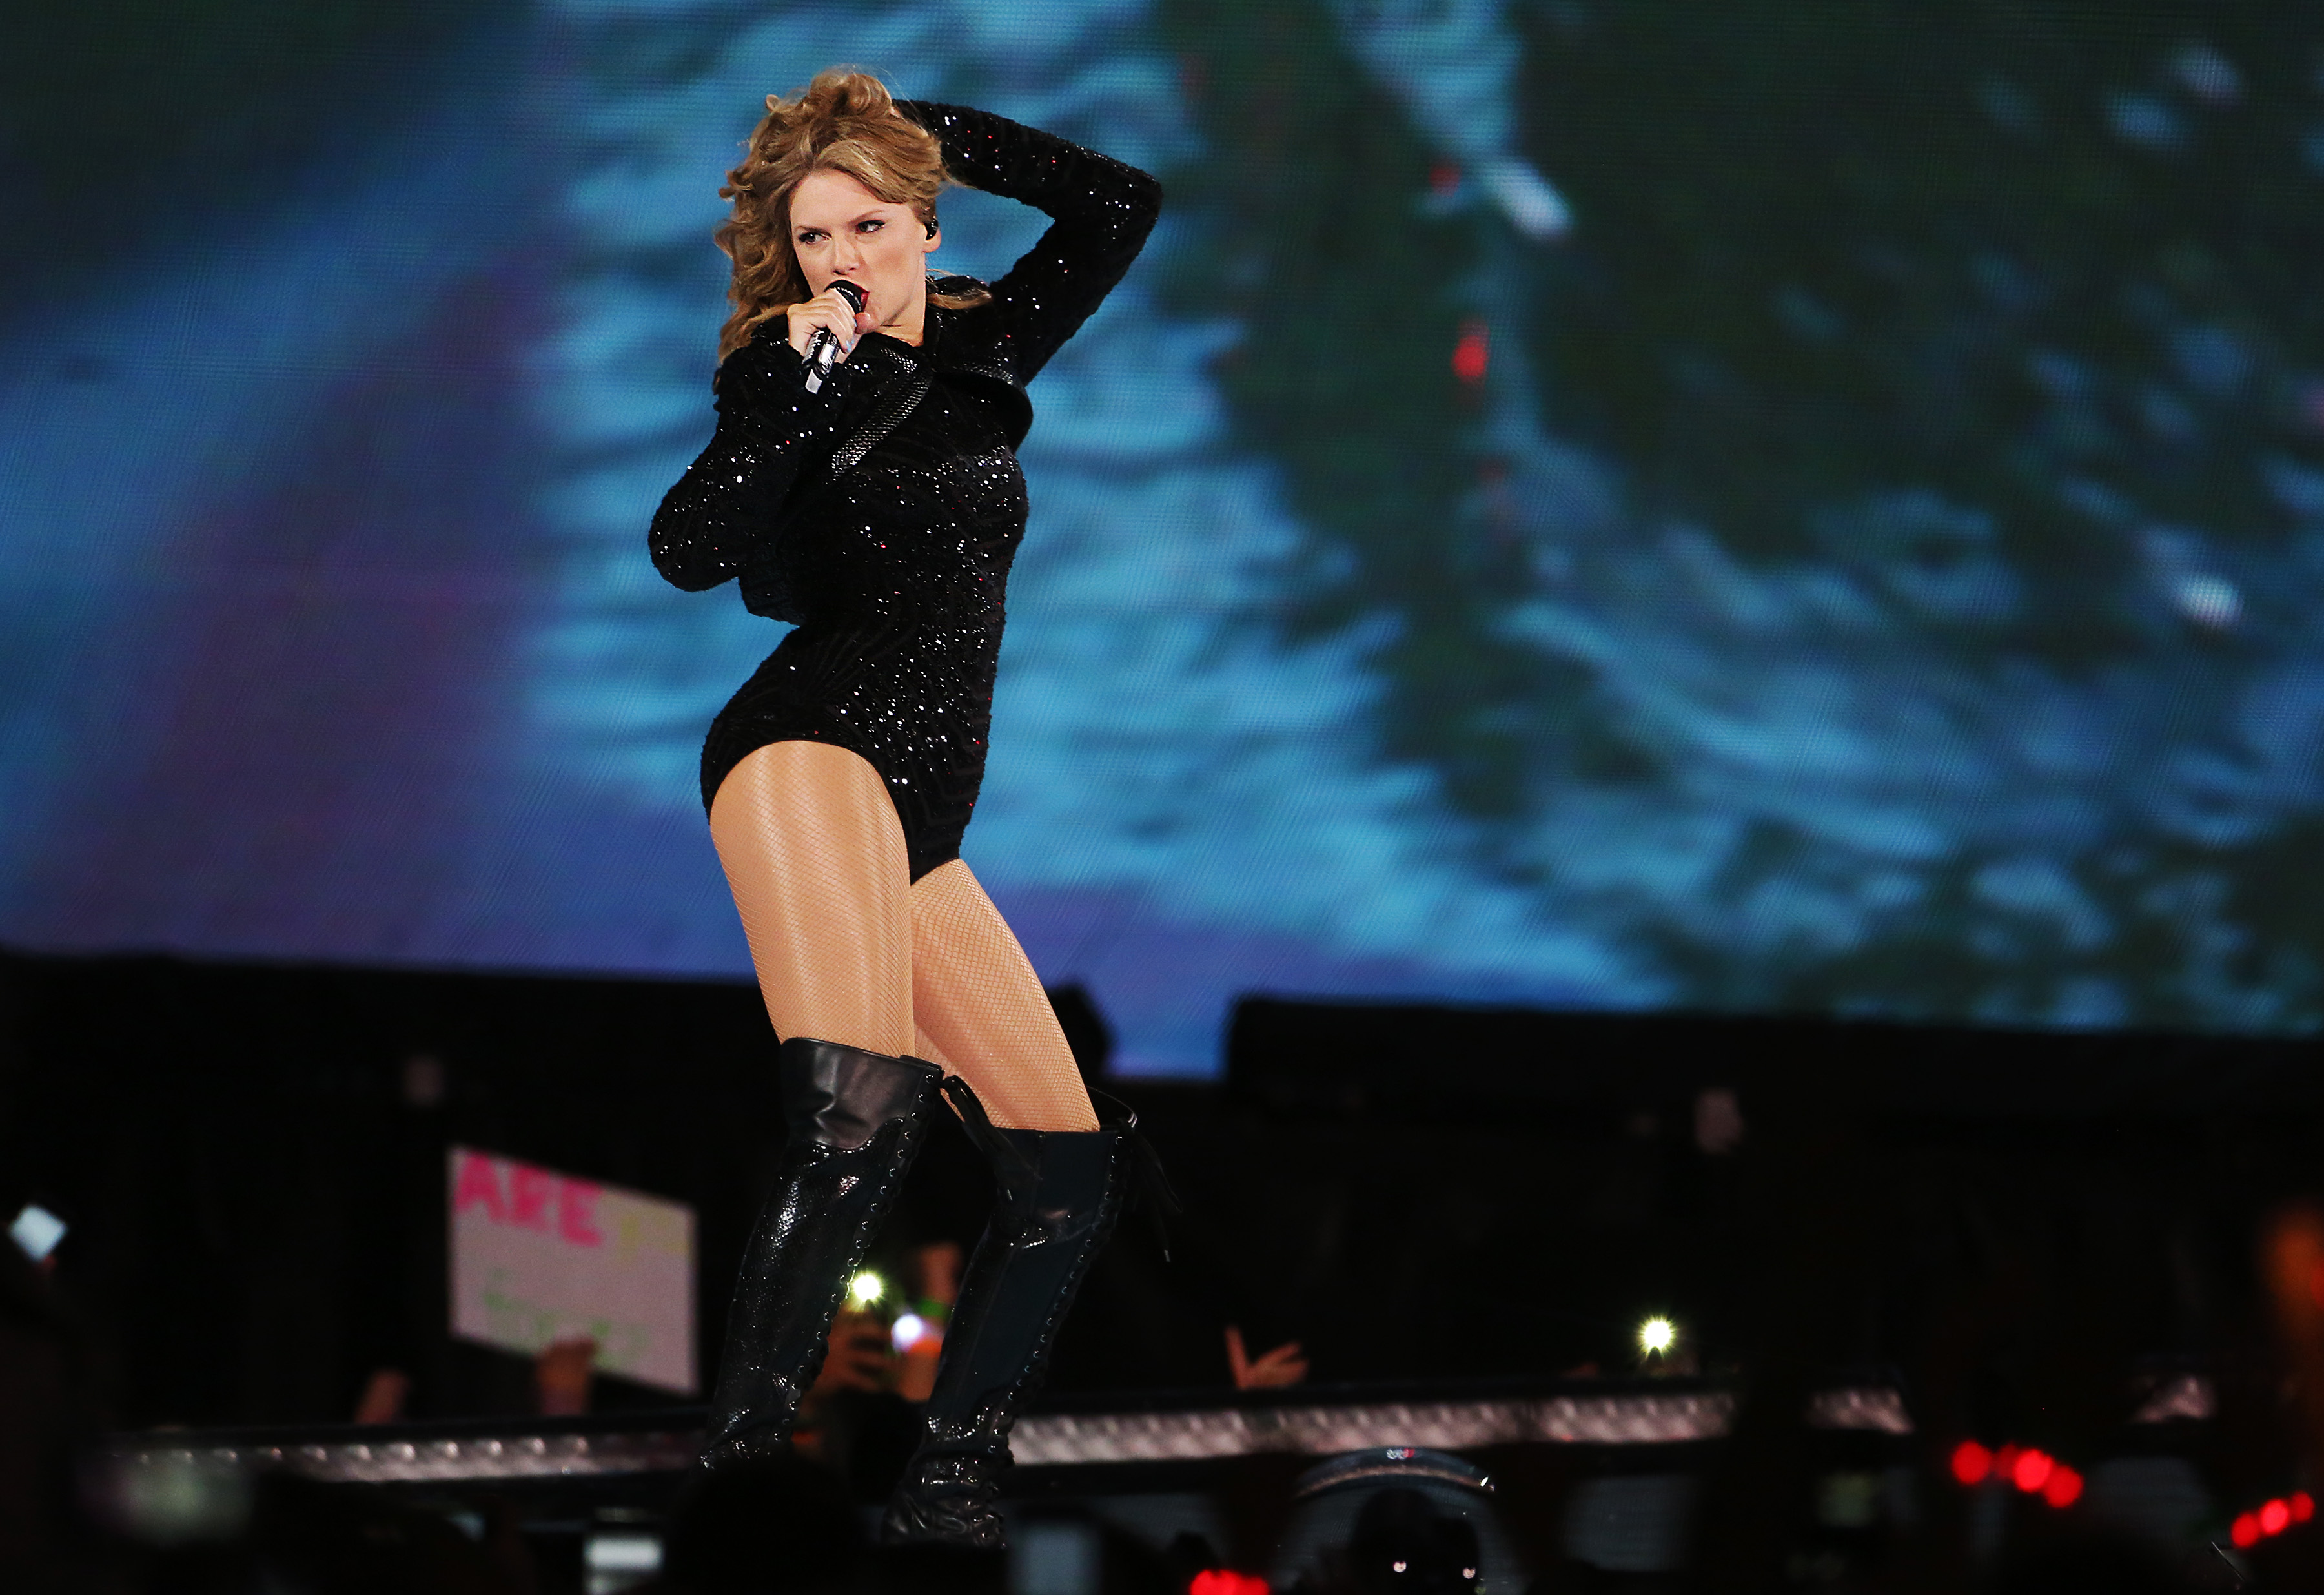 Taylor Swift covers a lot of ground in Gillette Stadium show